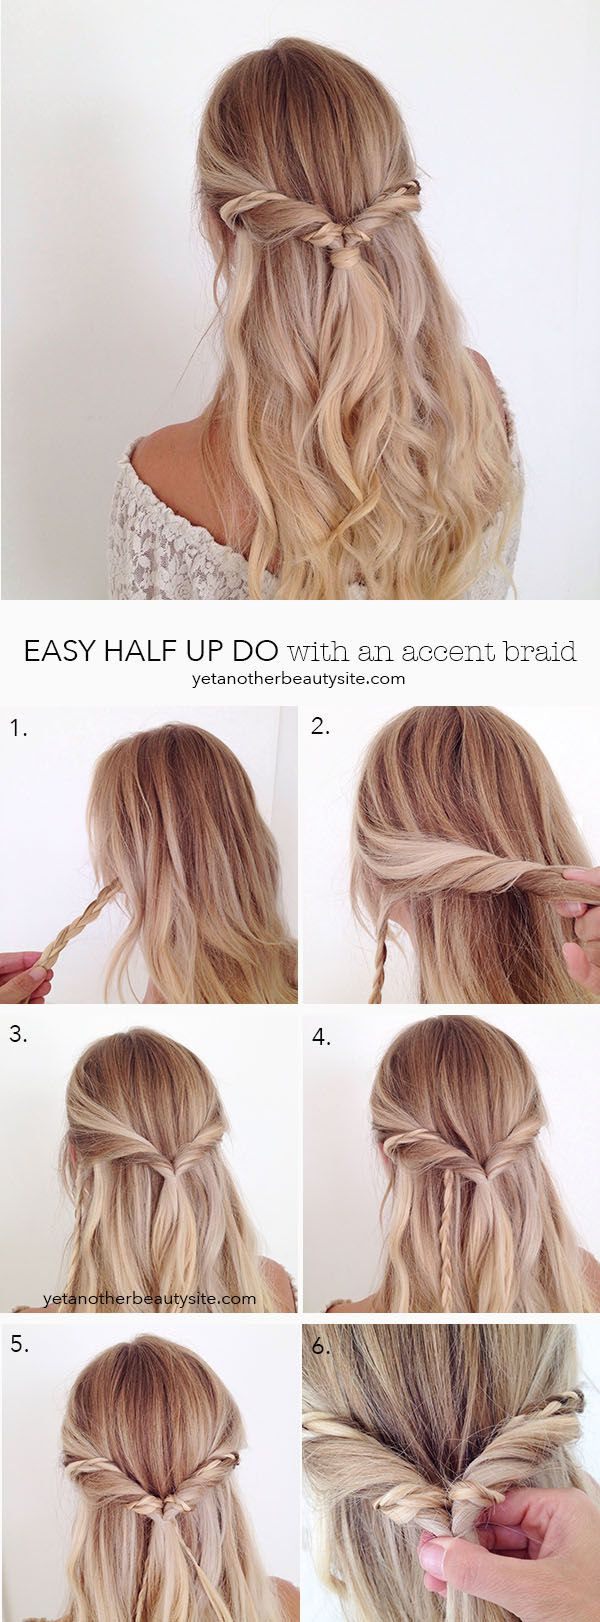 A lovely and easy hairstyle sac stilleri pinterest half updo